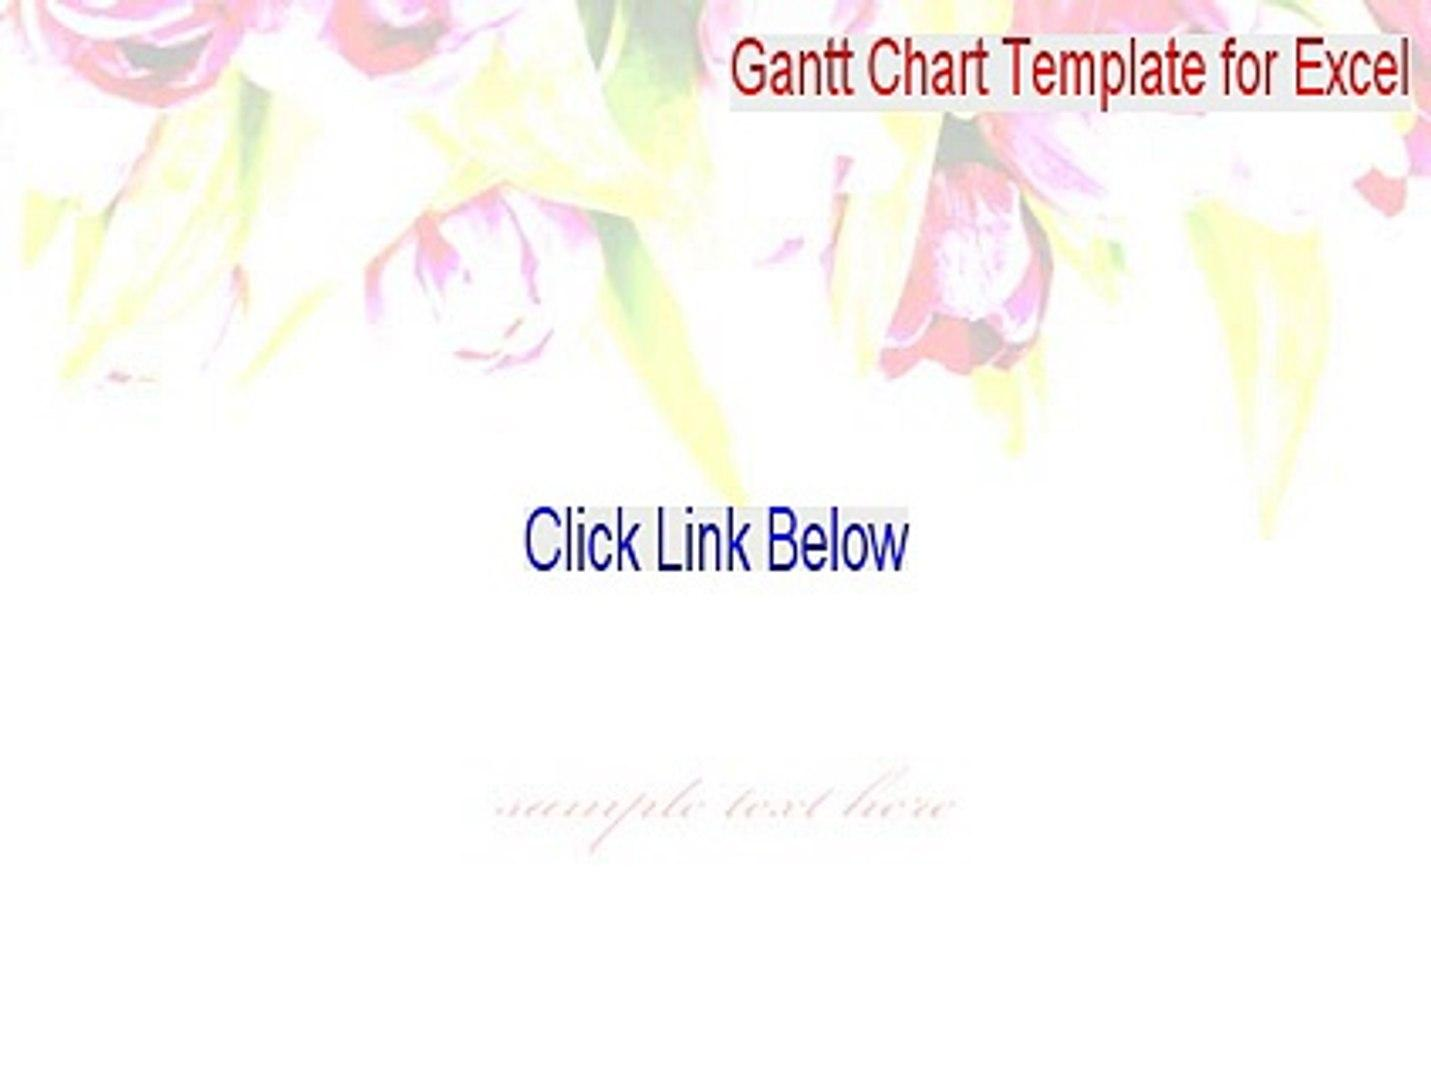 Gantt Chart Template For Excel 2010